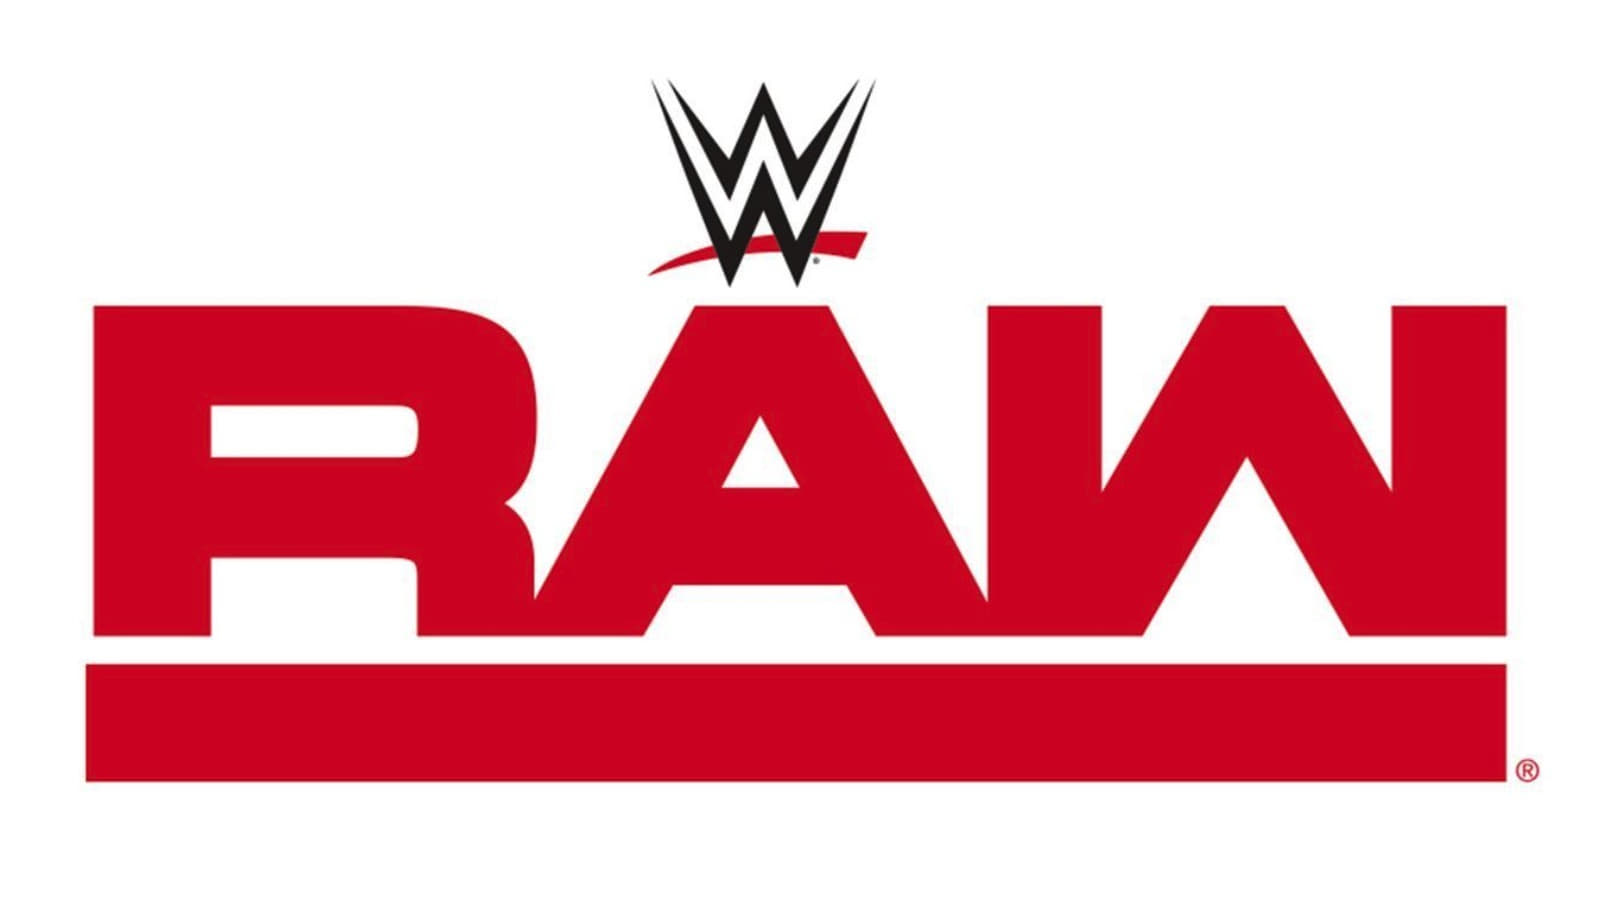 WWE Raw - Season 23 Episode 8 : February 23, 2015 (Nashville, TN) (1970)